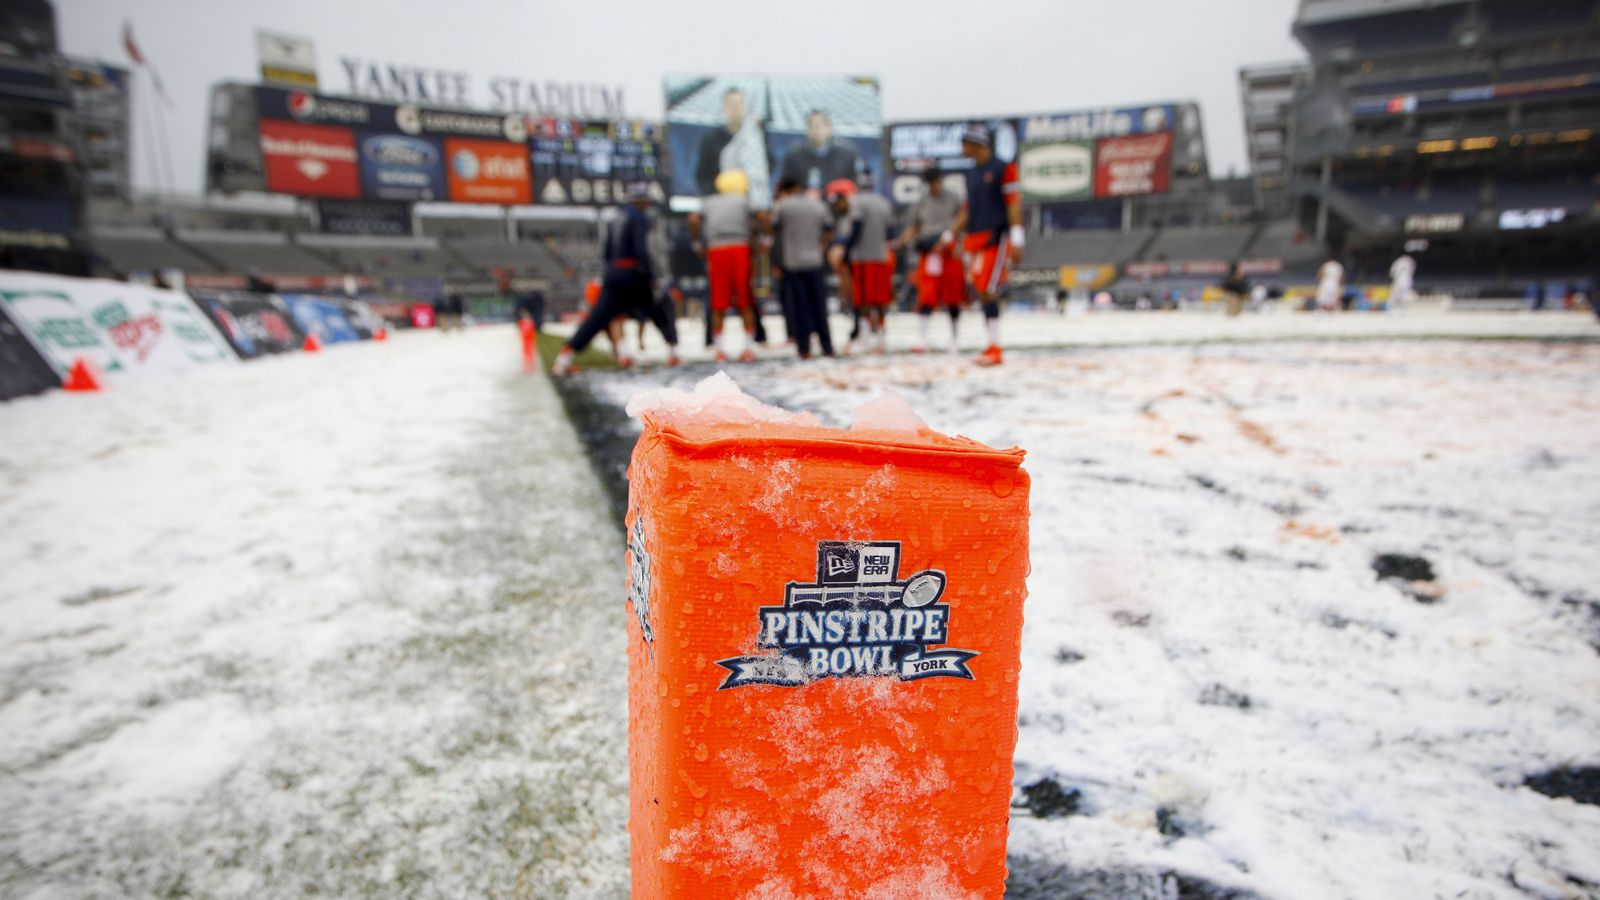 B1G Agreement with Yankees for the Pinstripe Bowl